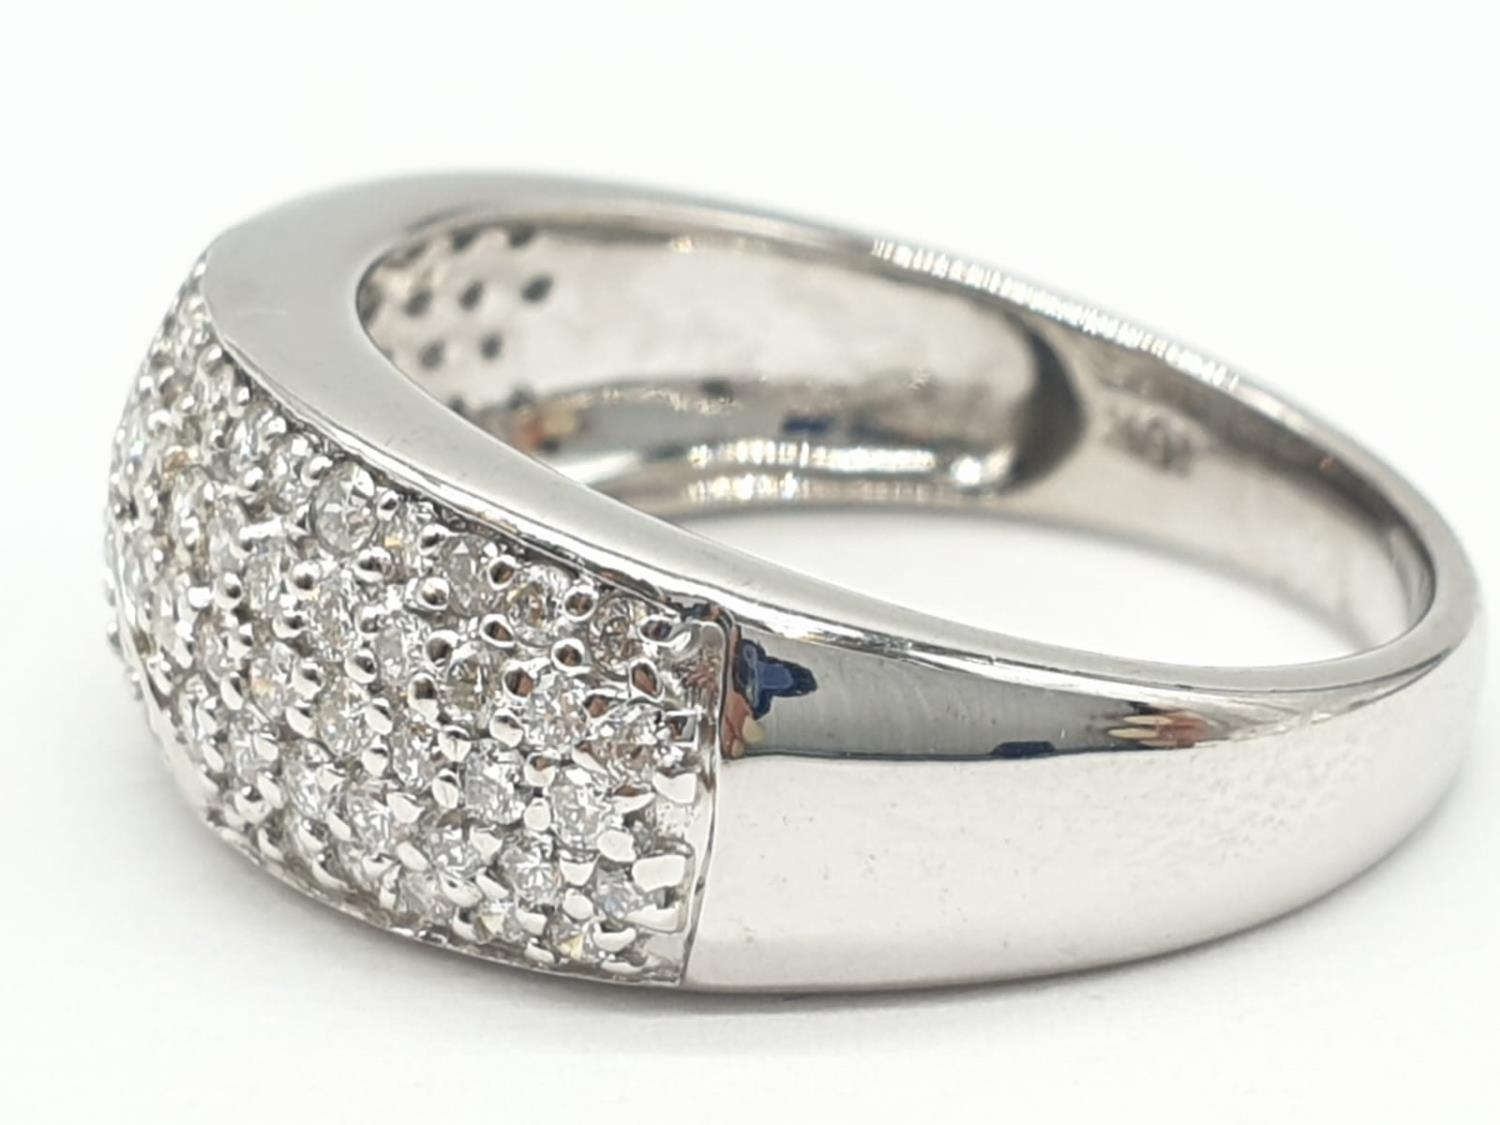 18ct diamond encrusted stylist ring. Weighs 5.6g and is a size O. - Image 3 of 7